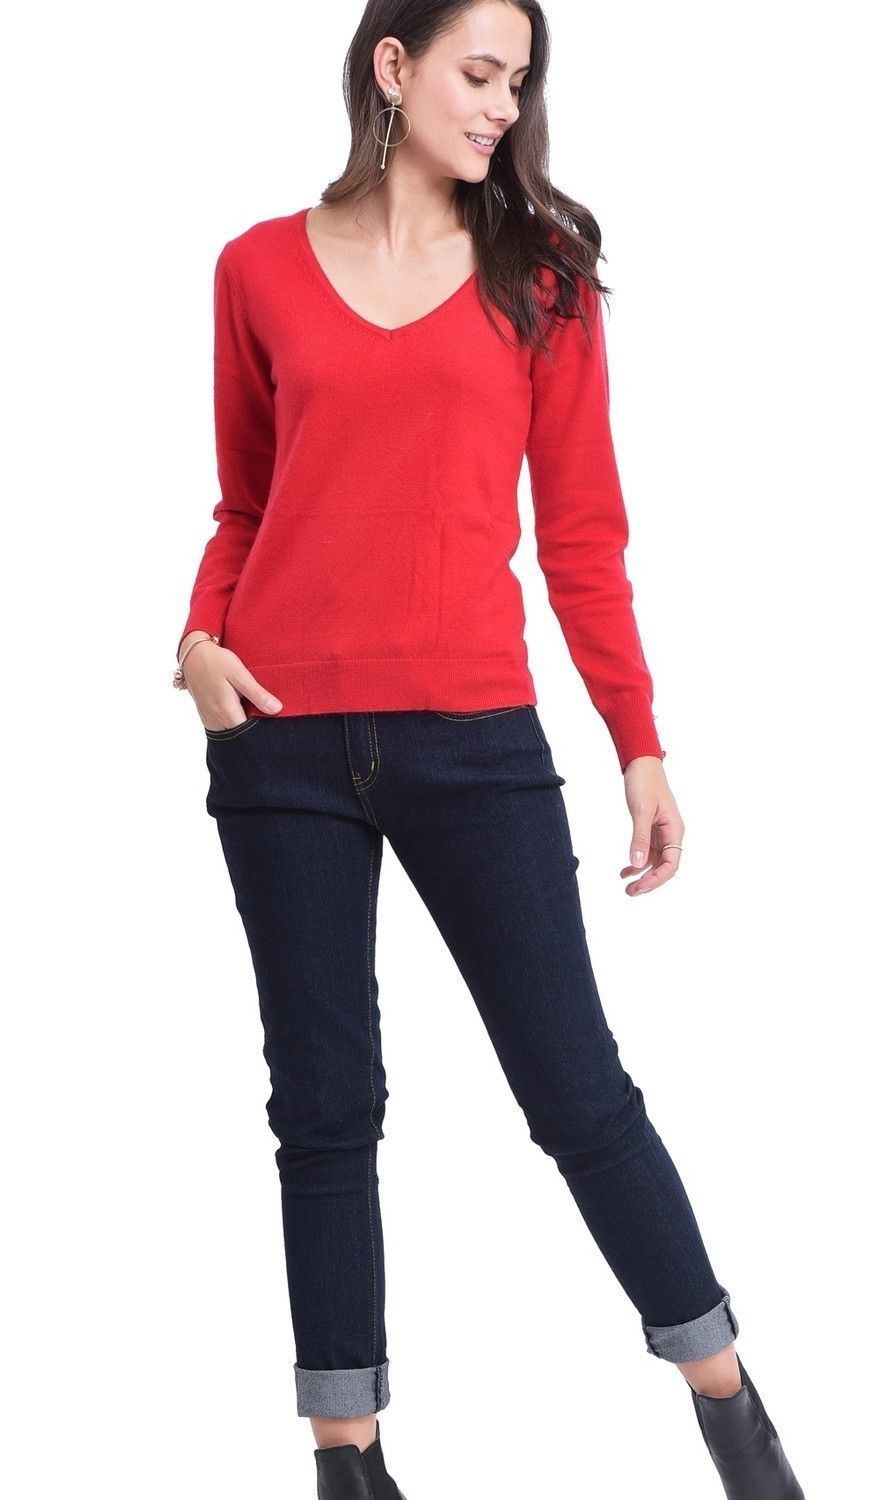 C&JO V-neck Sweater with Buttoned Sleeves in Red